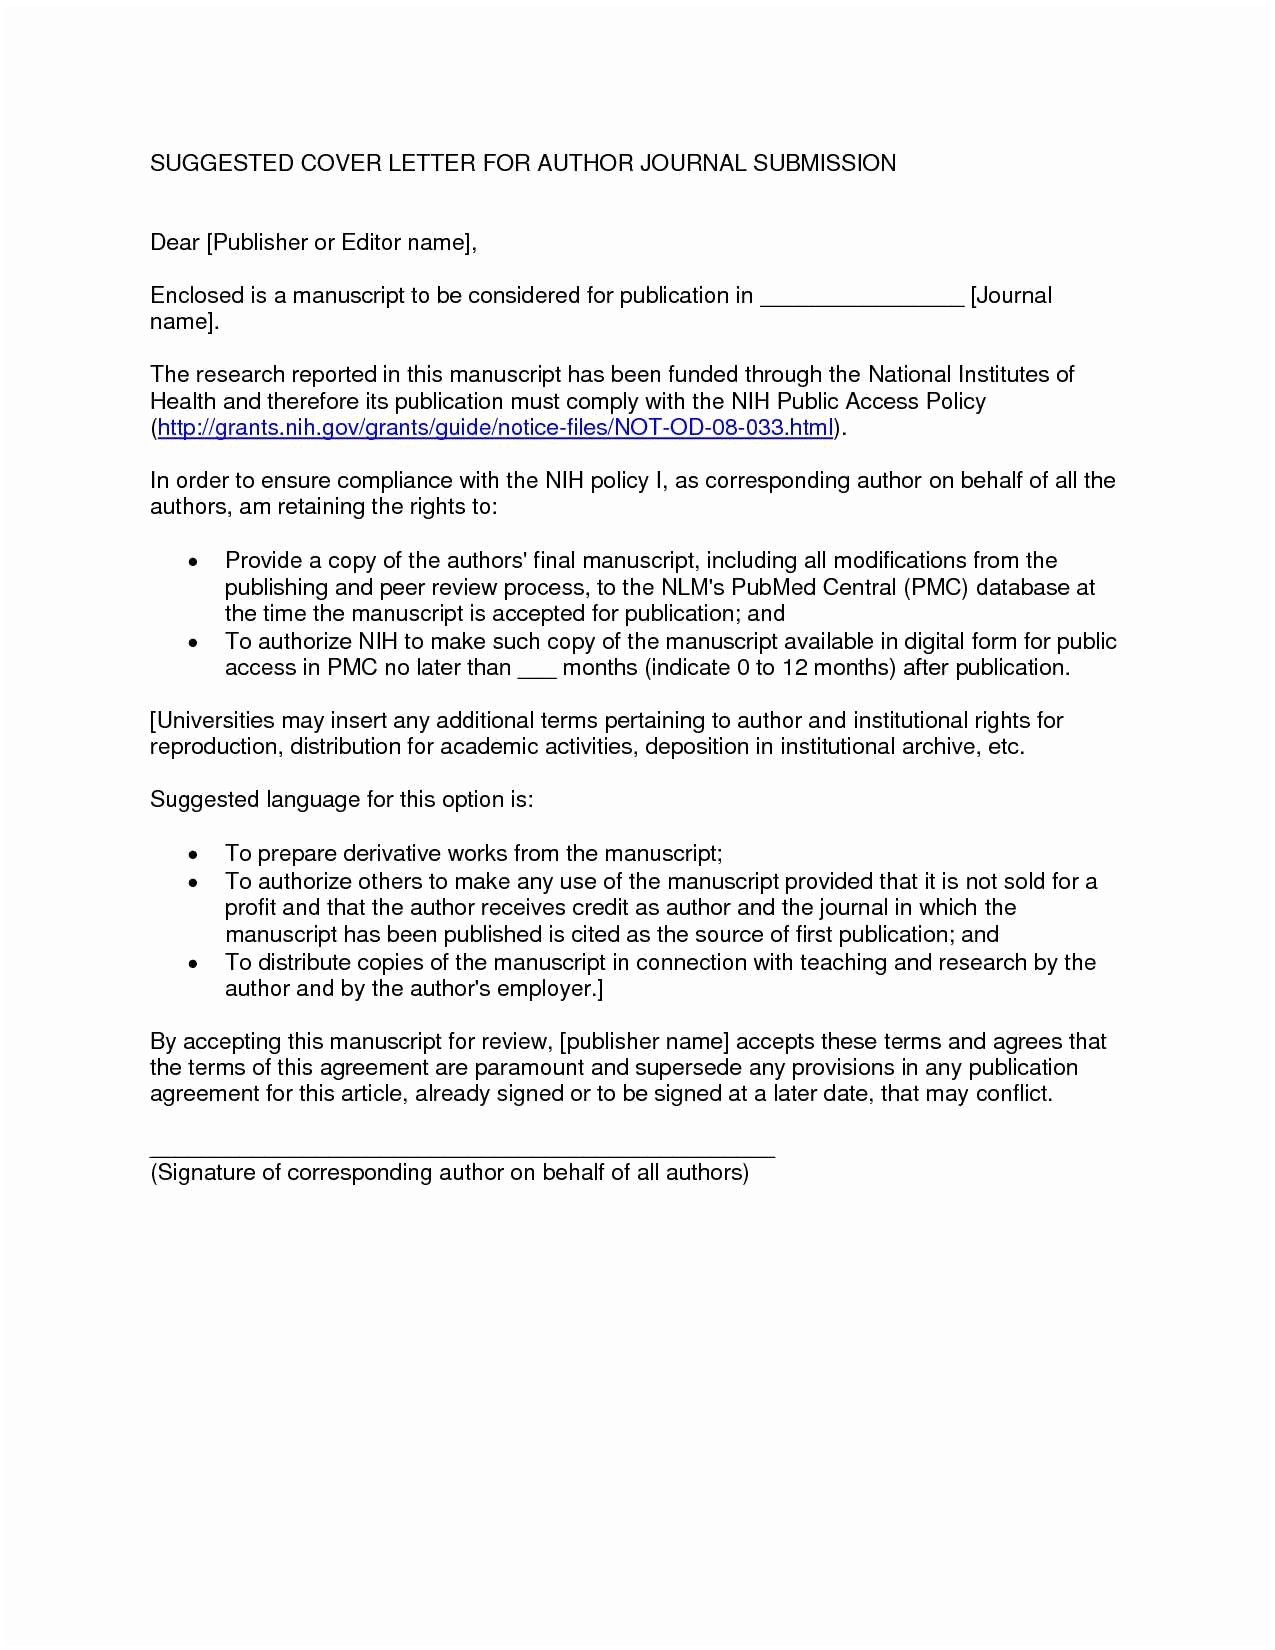 Gift Letter Template for Home Loan - Mortgage Gift Letter Mortgage Gift Letter Template Lovely